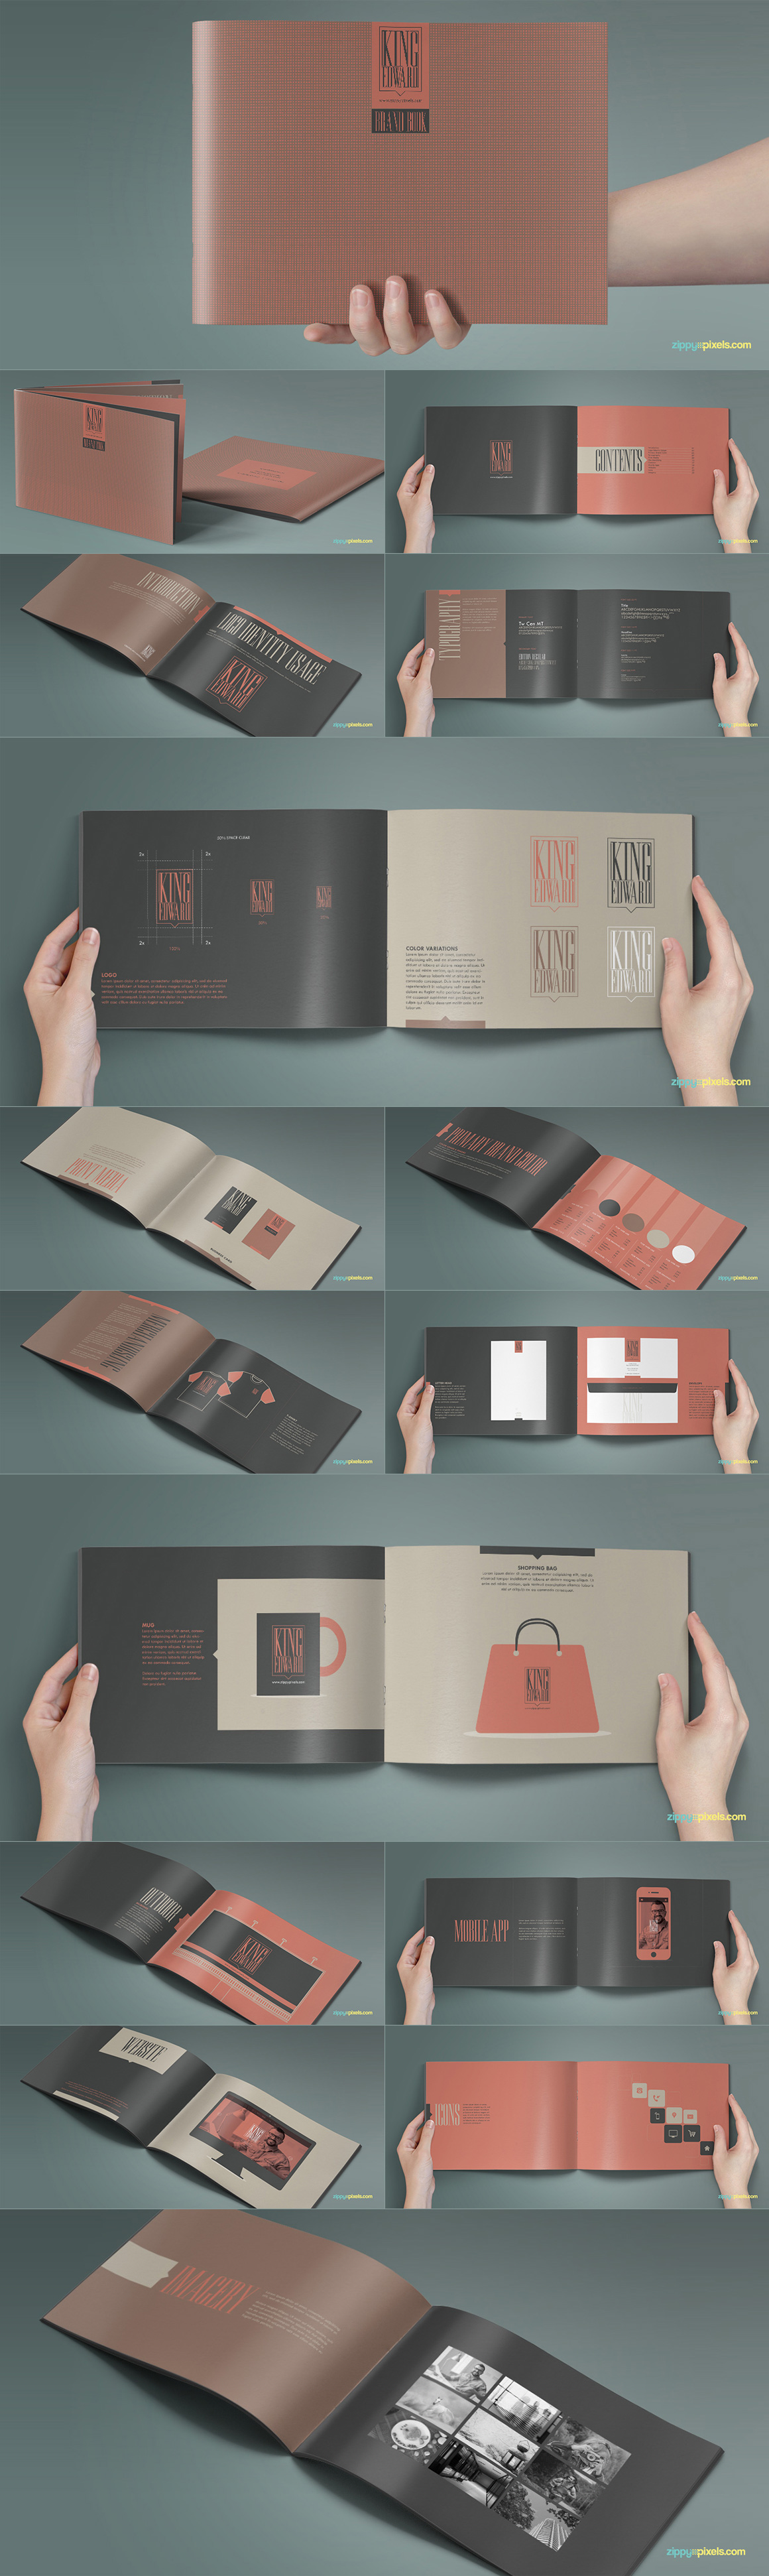 Style Guide & Brand Book Templates-strip2